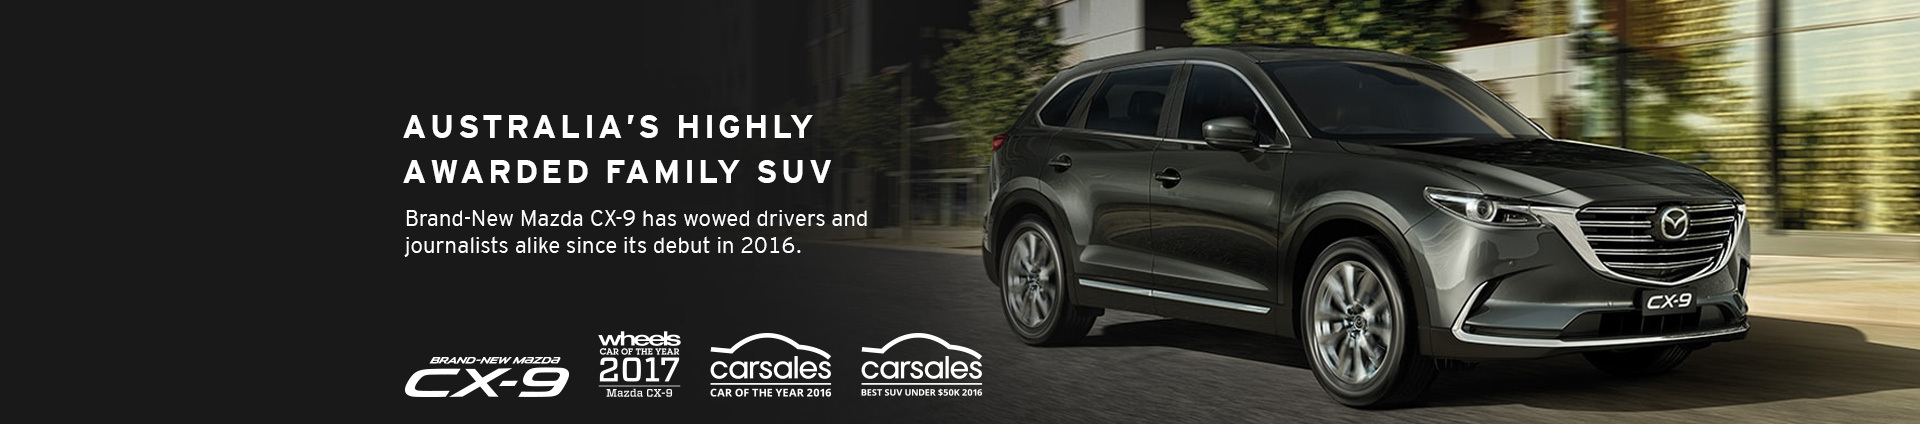 The Award Winning Mazda CX-9